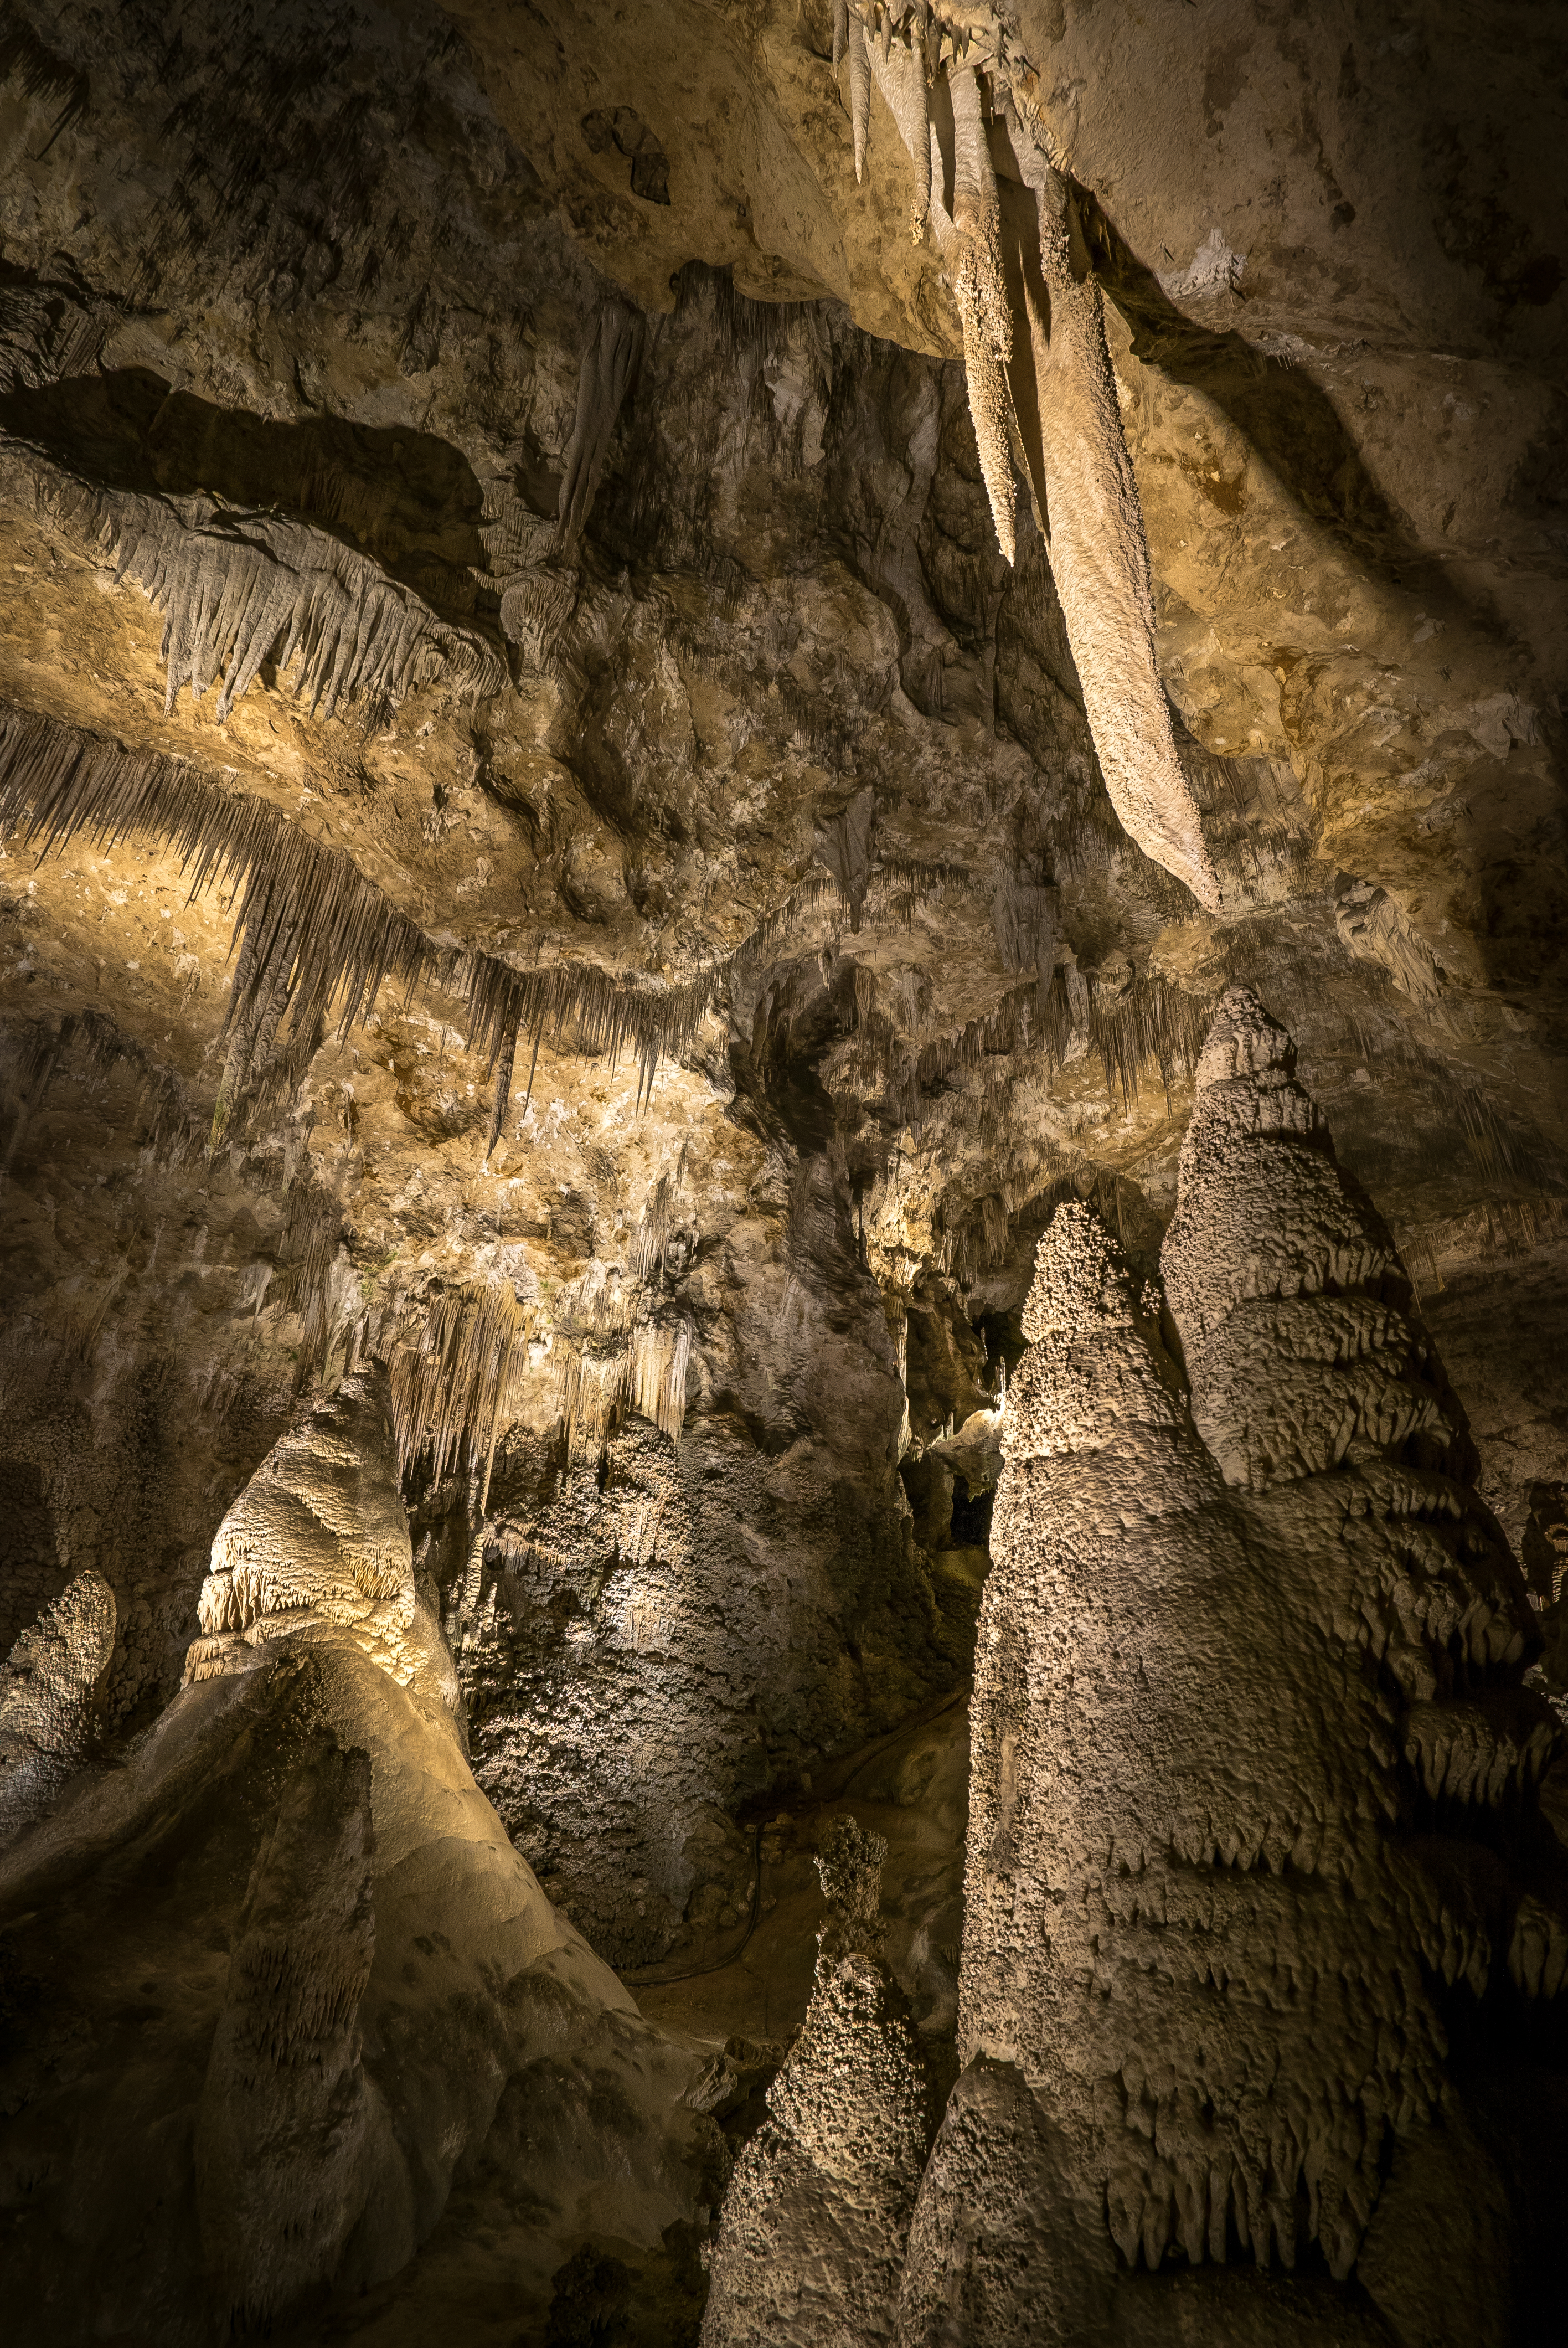 Stalagtites - Carlsburg Caverns National Park, New Mexico